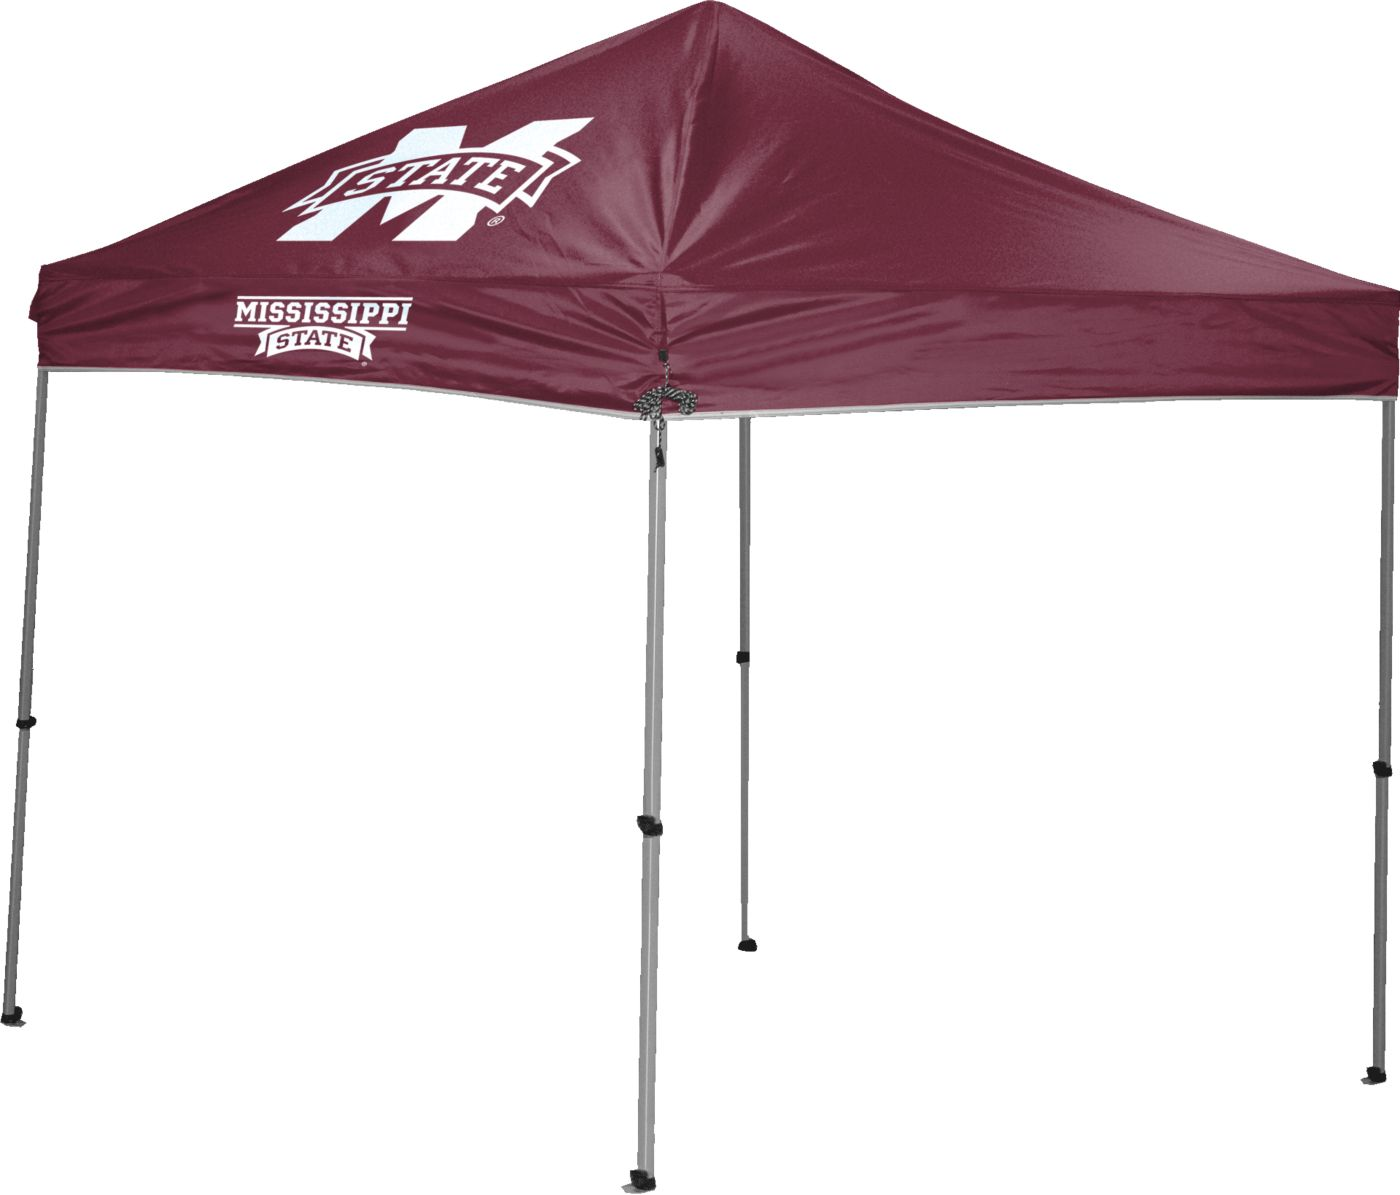 Rawlings Mississippi State Bulldogs 9' x 9' Sideline Canopy Tent